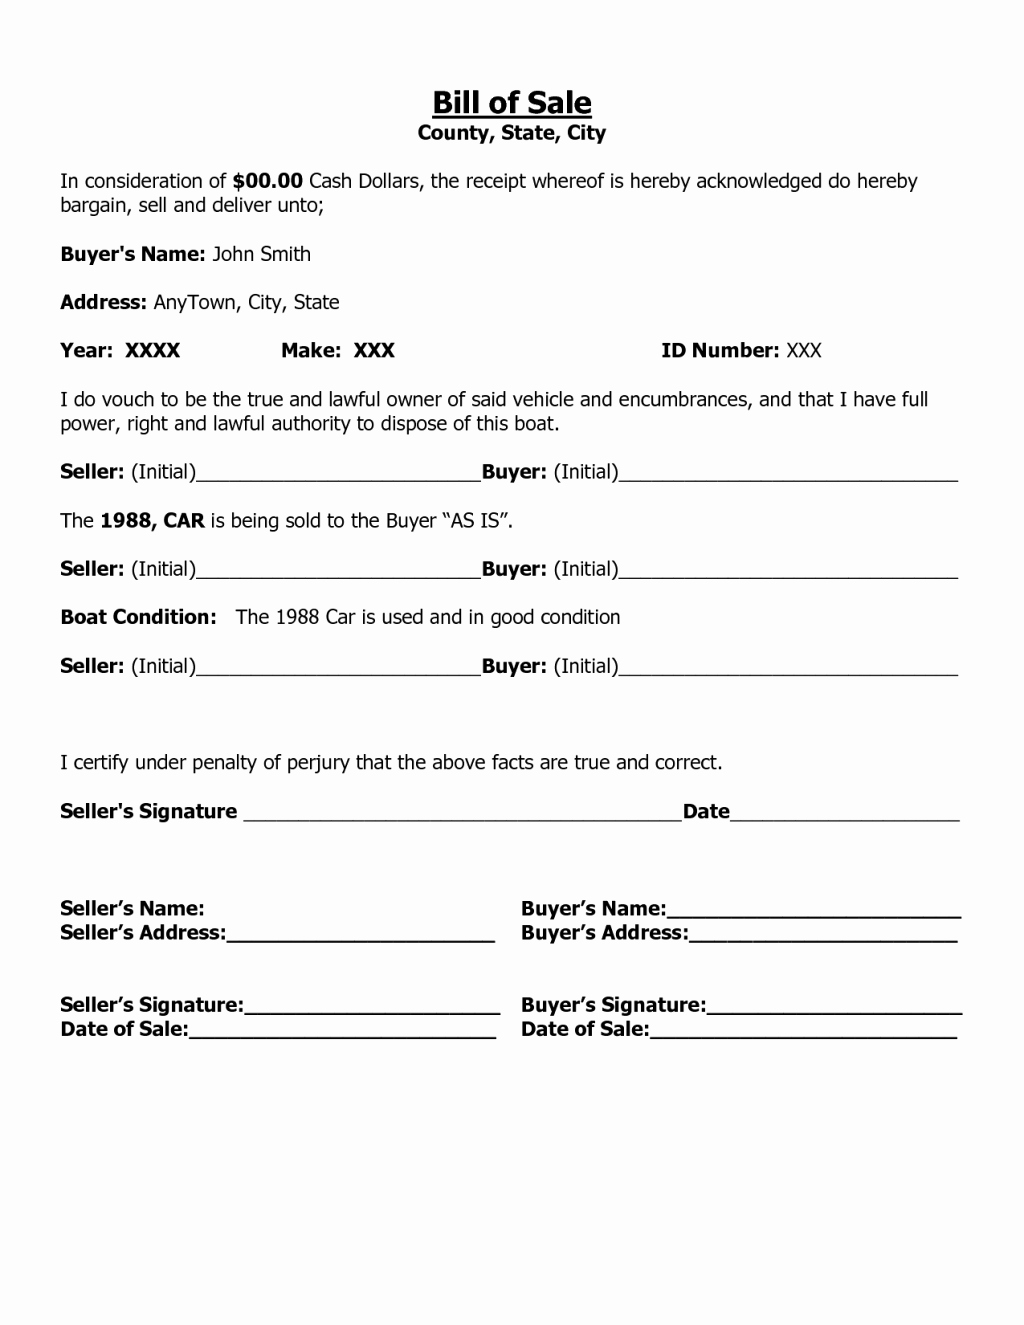 Bill Of Sale Sample Car Awesome Bill Sale Sample Document Free Blank Invoice form